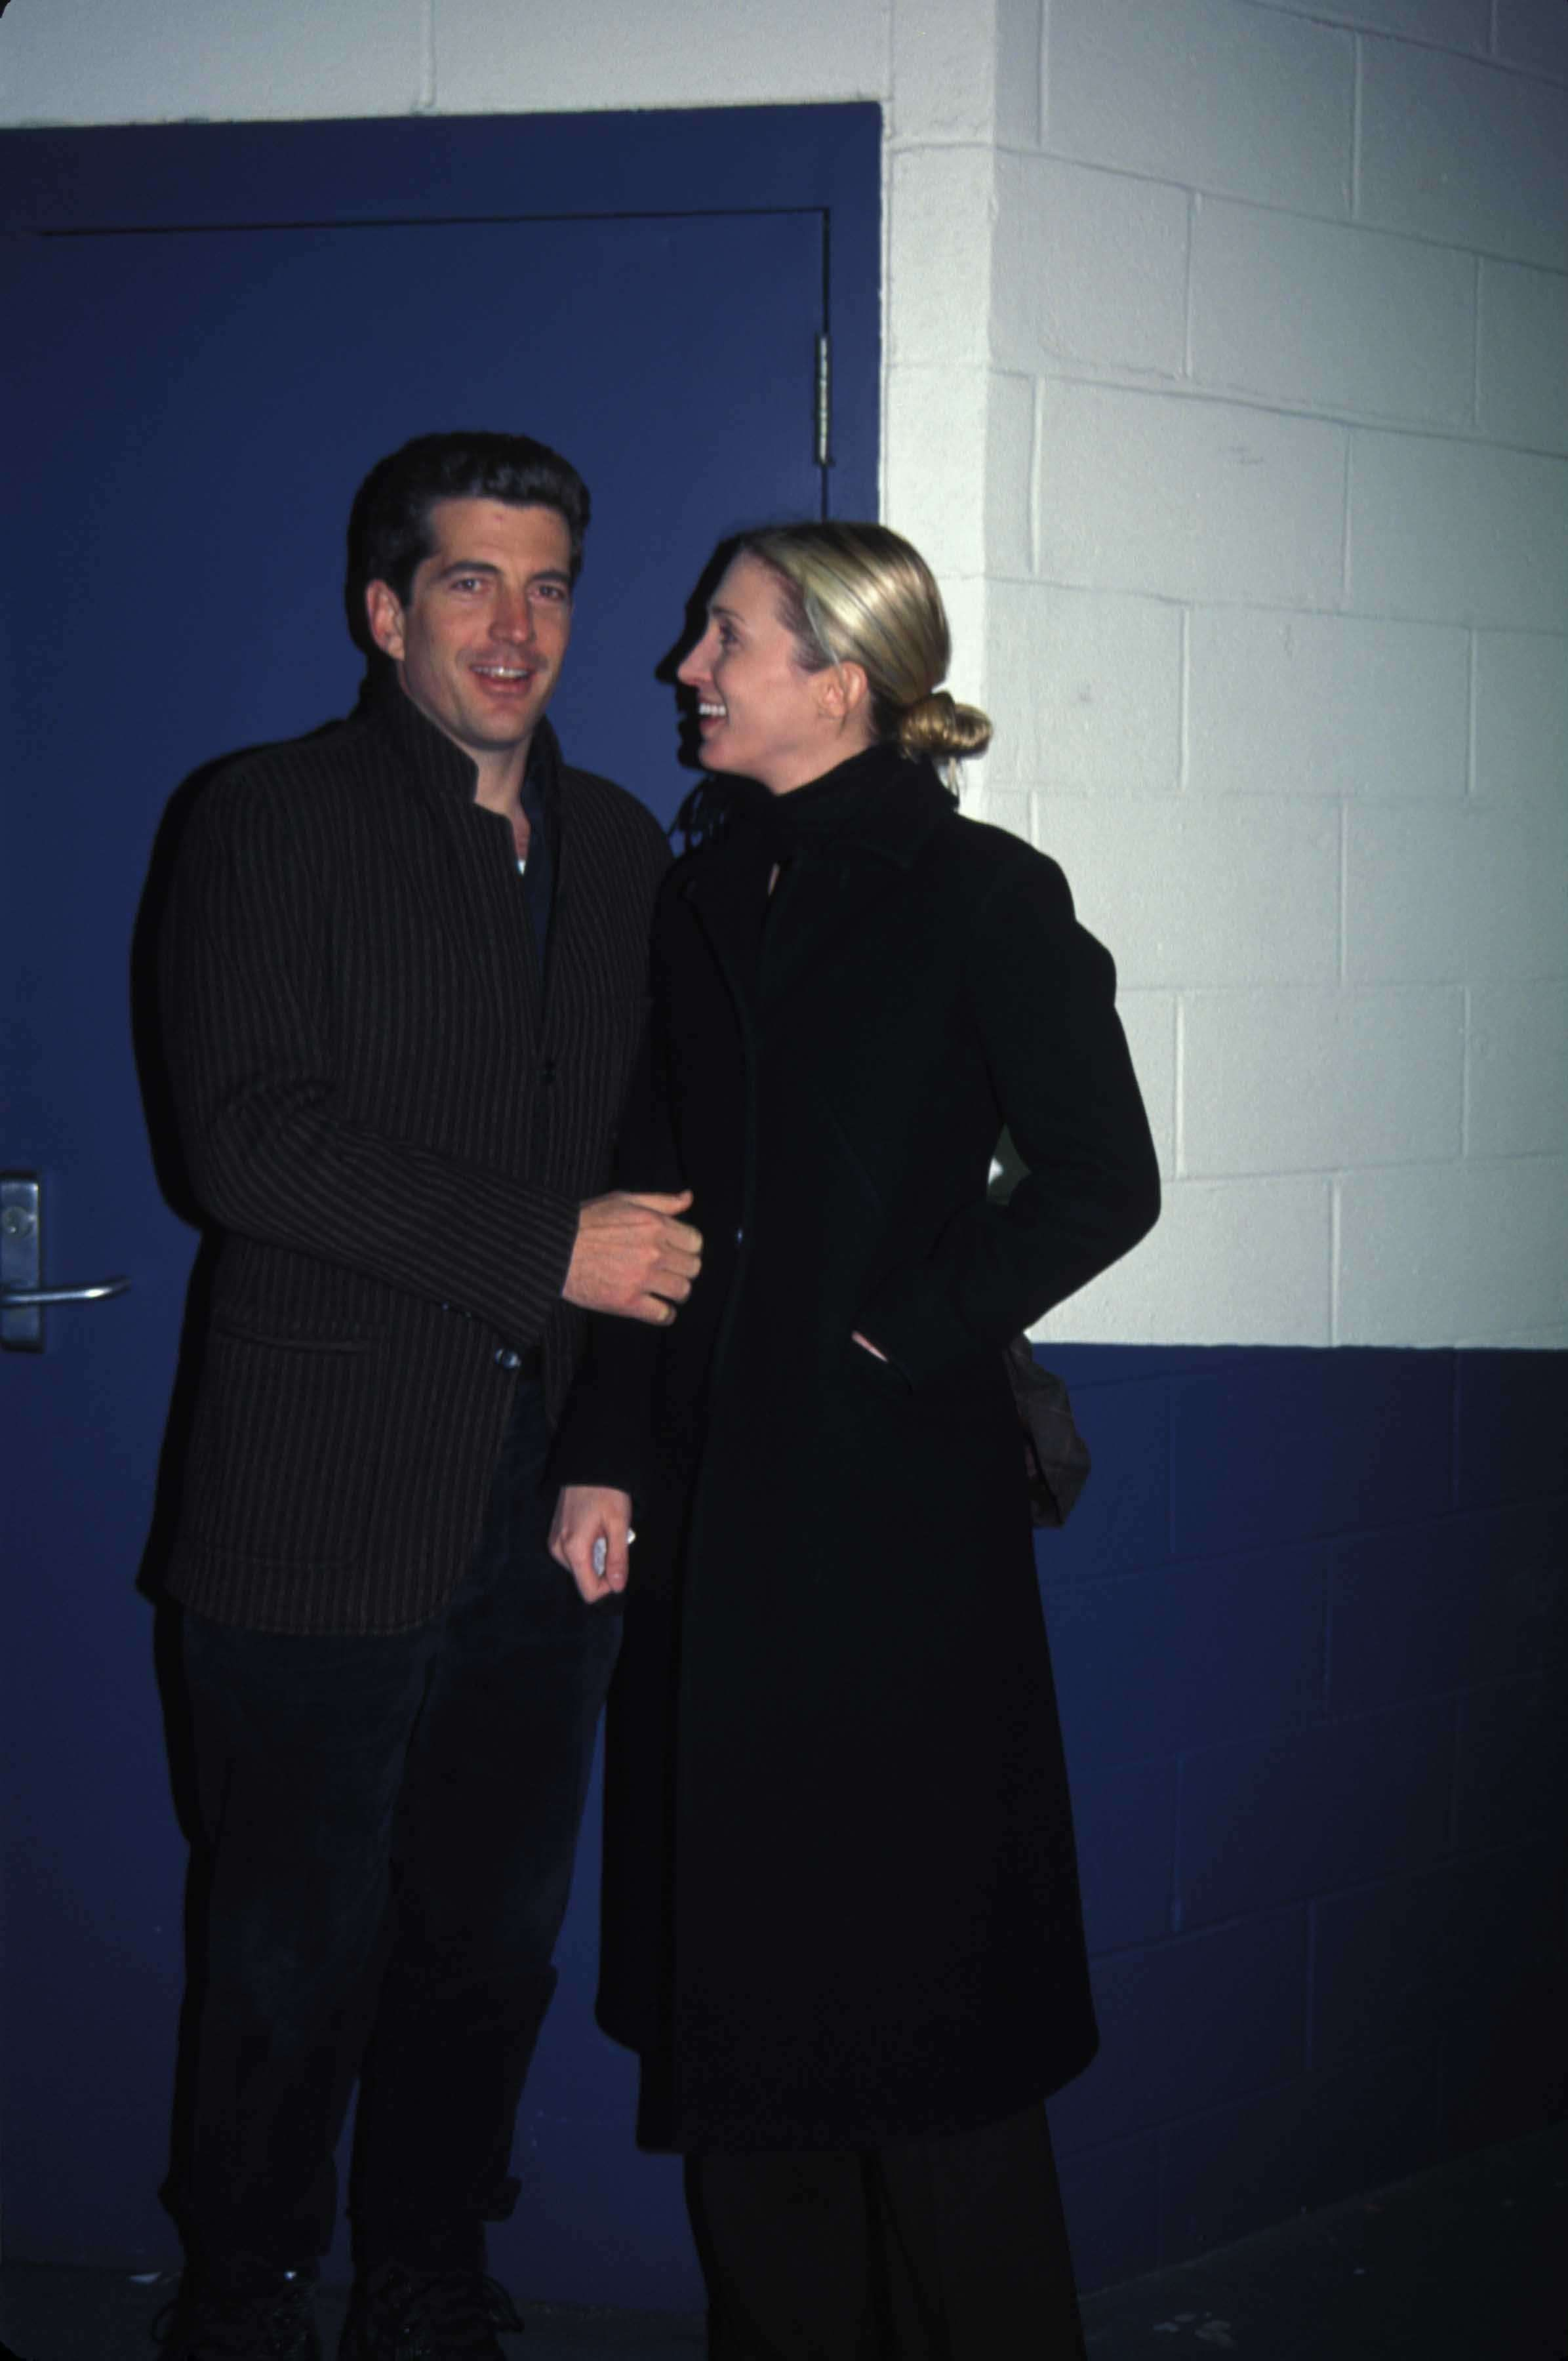 May 25 1999 The Last Photos Carolyn Bessette Kennedy John Kennedy Jr Carolyn Bessette Kennedy Style,Christina El Moussa Wedding Ring With Tarek